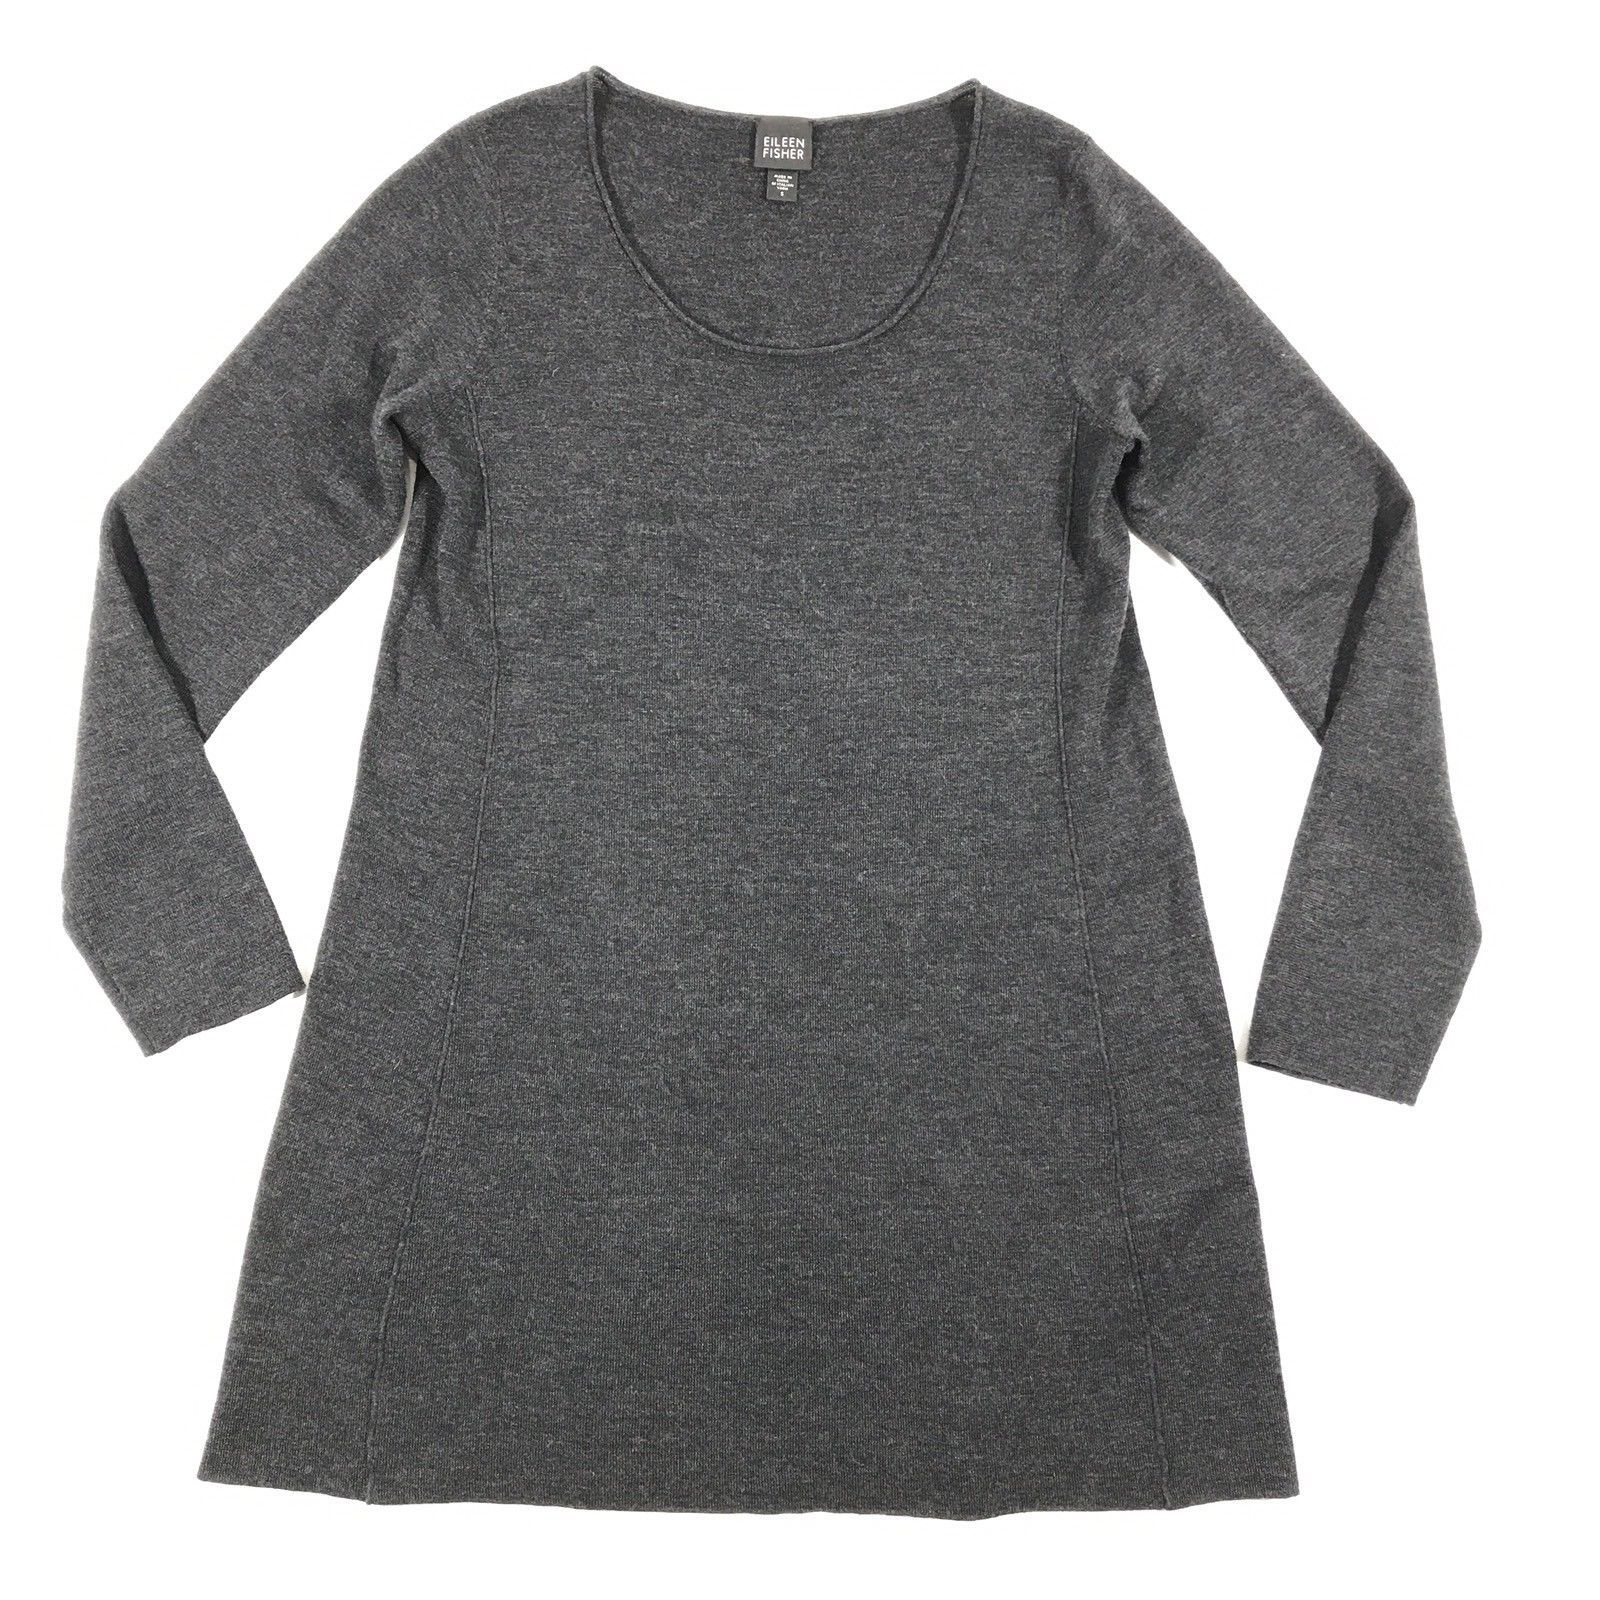 Cool amazing eileen fisher women wool sweater tunic dress s small